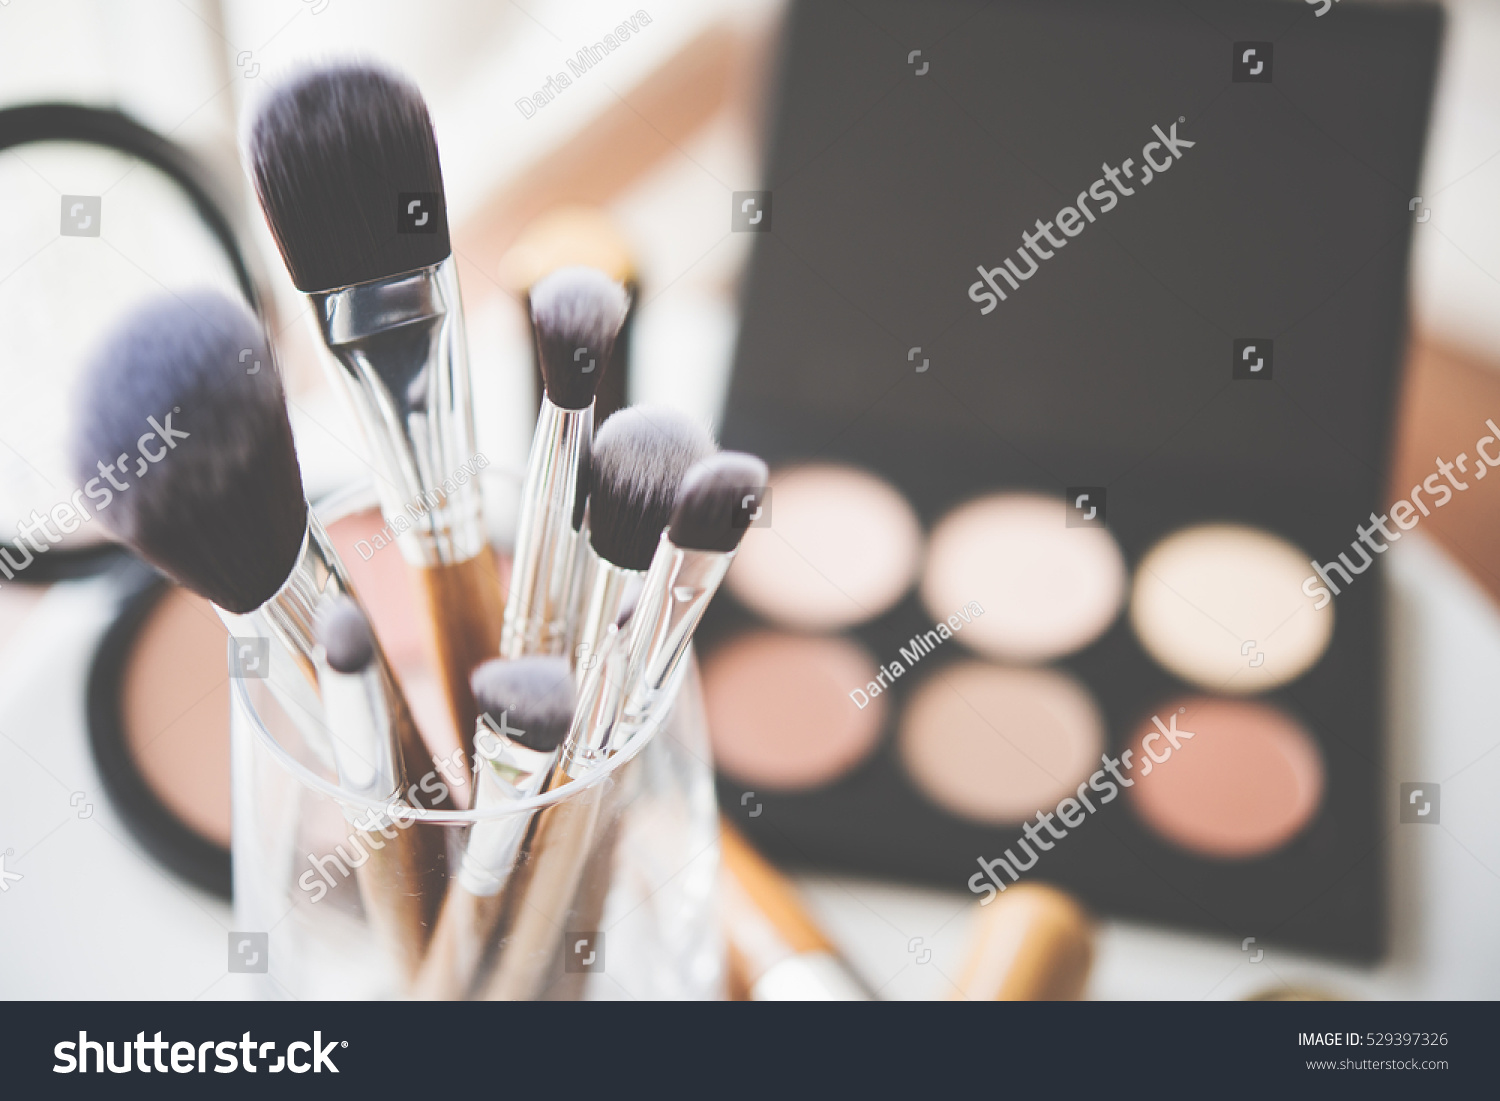 stock-photo-professional-makeup-brushes-and-tools-529397326.jpg